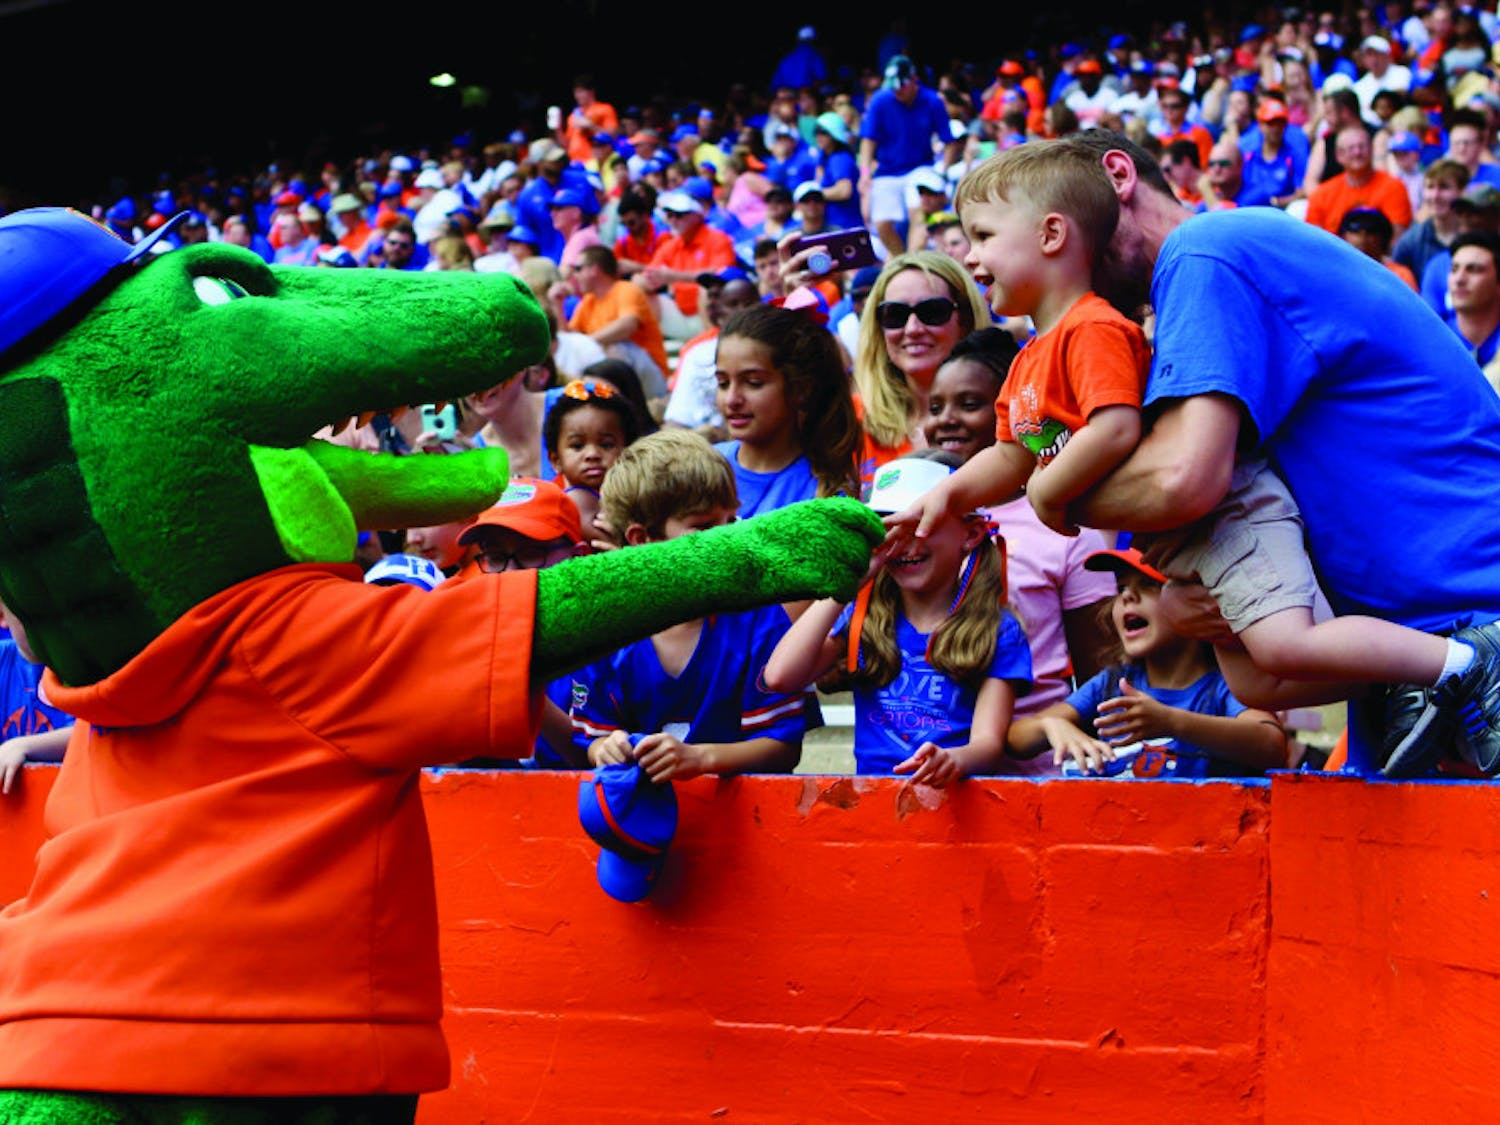 Albert E. Gator greets a young Gator fan during the Orange & Blue football game in January 2019. The scrimmage held at Ben Hill Griffin Stadium had 53,015 in attendance.